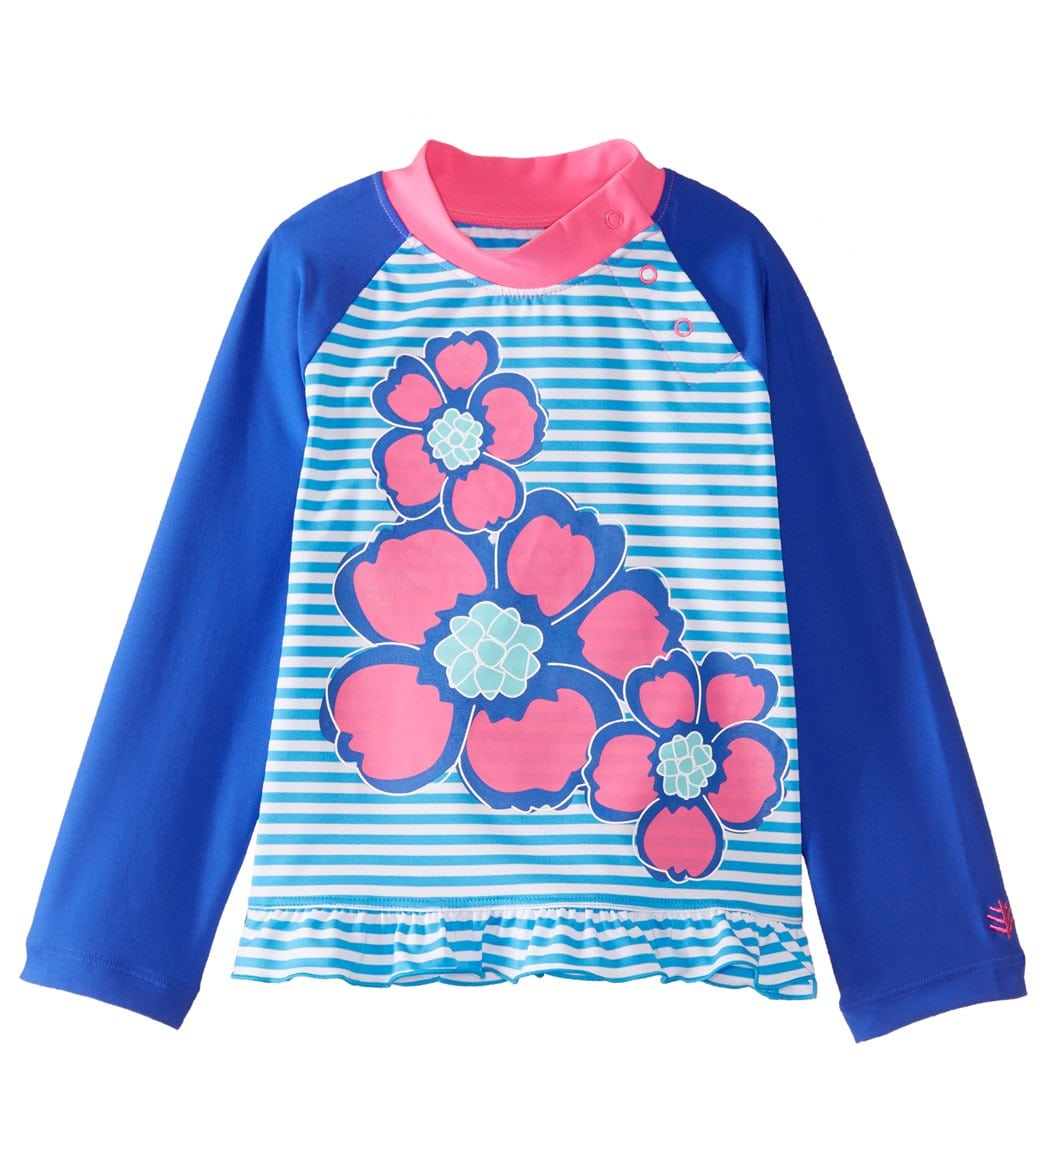 a8e0fb8954 Coolibar Girls' UPF 50+ Ruffle Swim Shirt (6mos-3T) at SwimOutlet.com